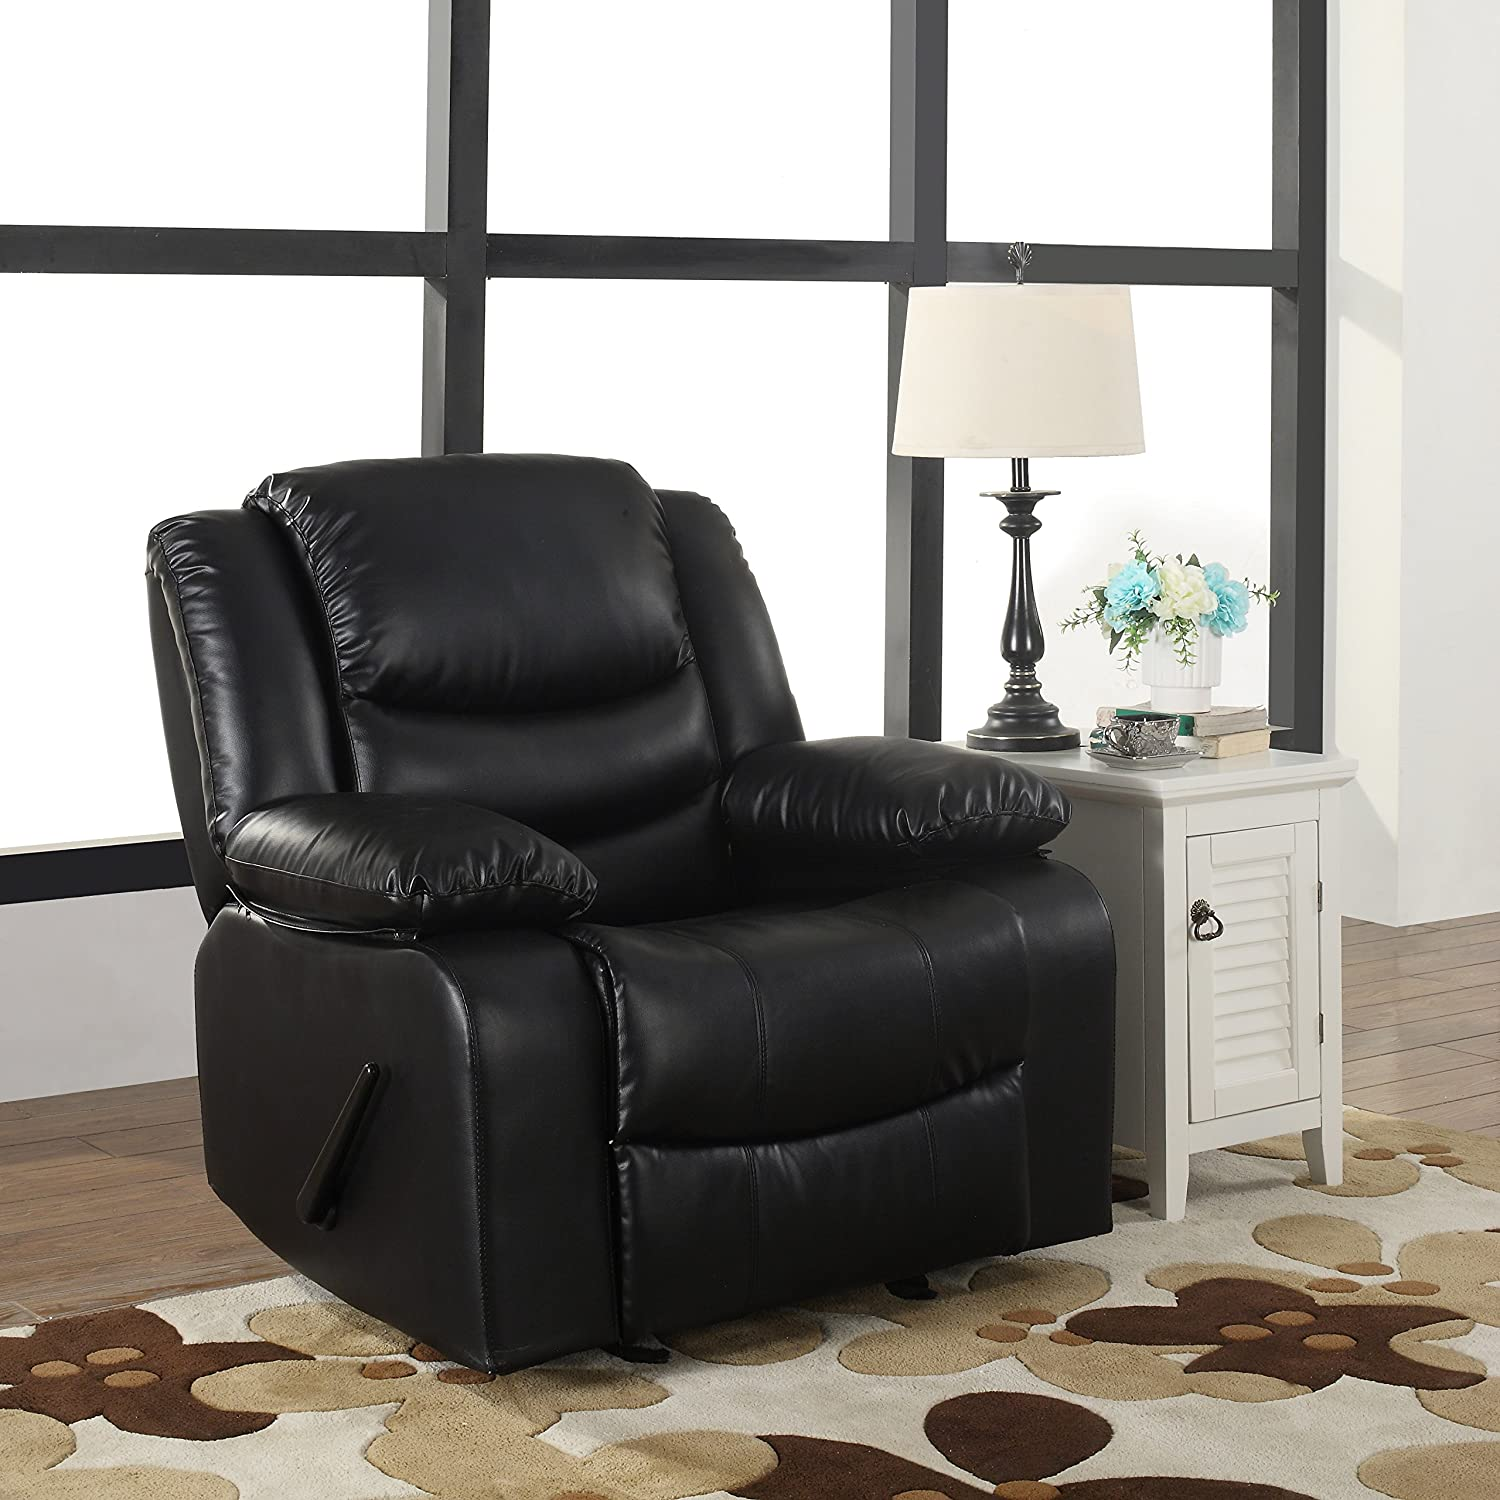 Amazon.com Bonded Leather Rocker Recliner Living Room Chair Black / Brown (Black) Kitchen u0026 Dining  sc 1 st  Amazon.com & Amazon.com: Bonded Leather Rocker Recliner Living Room Chair ... islam-shia.org